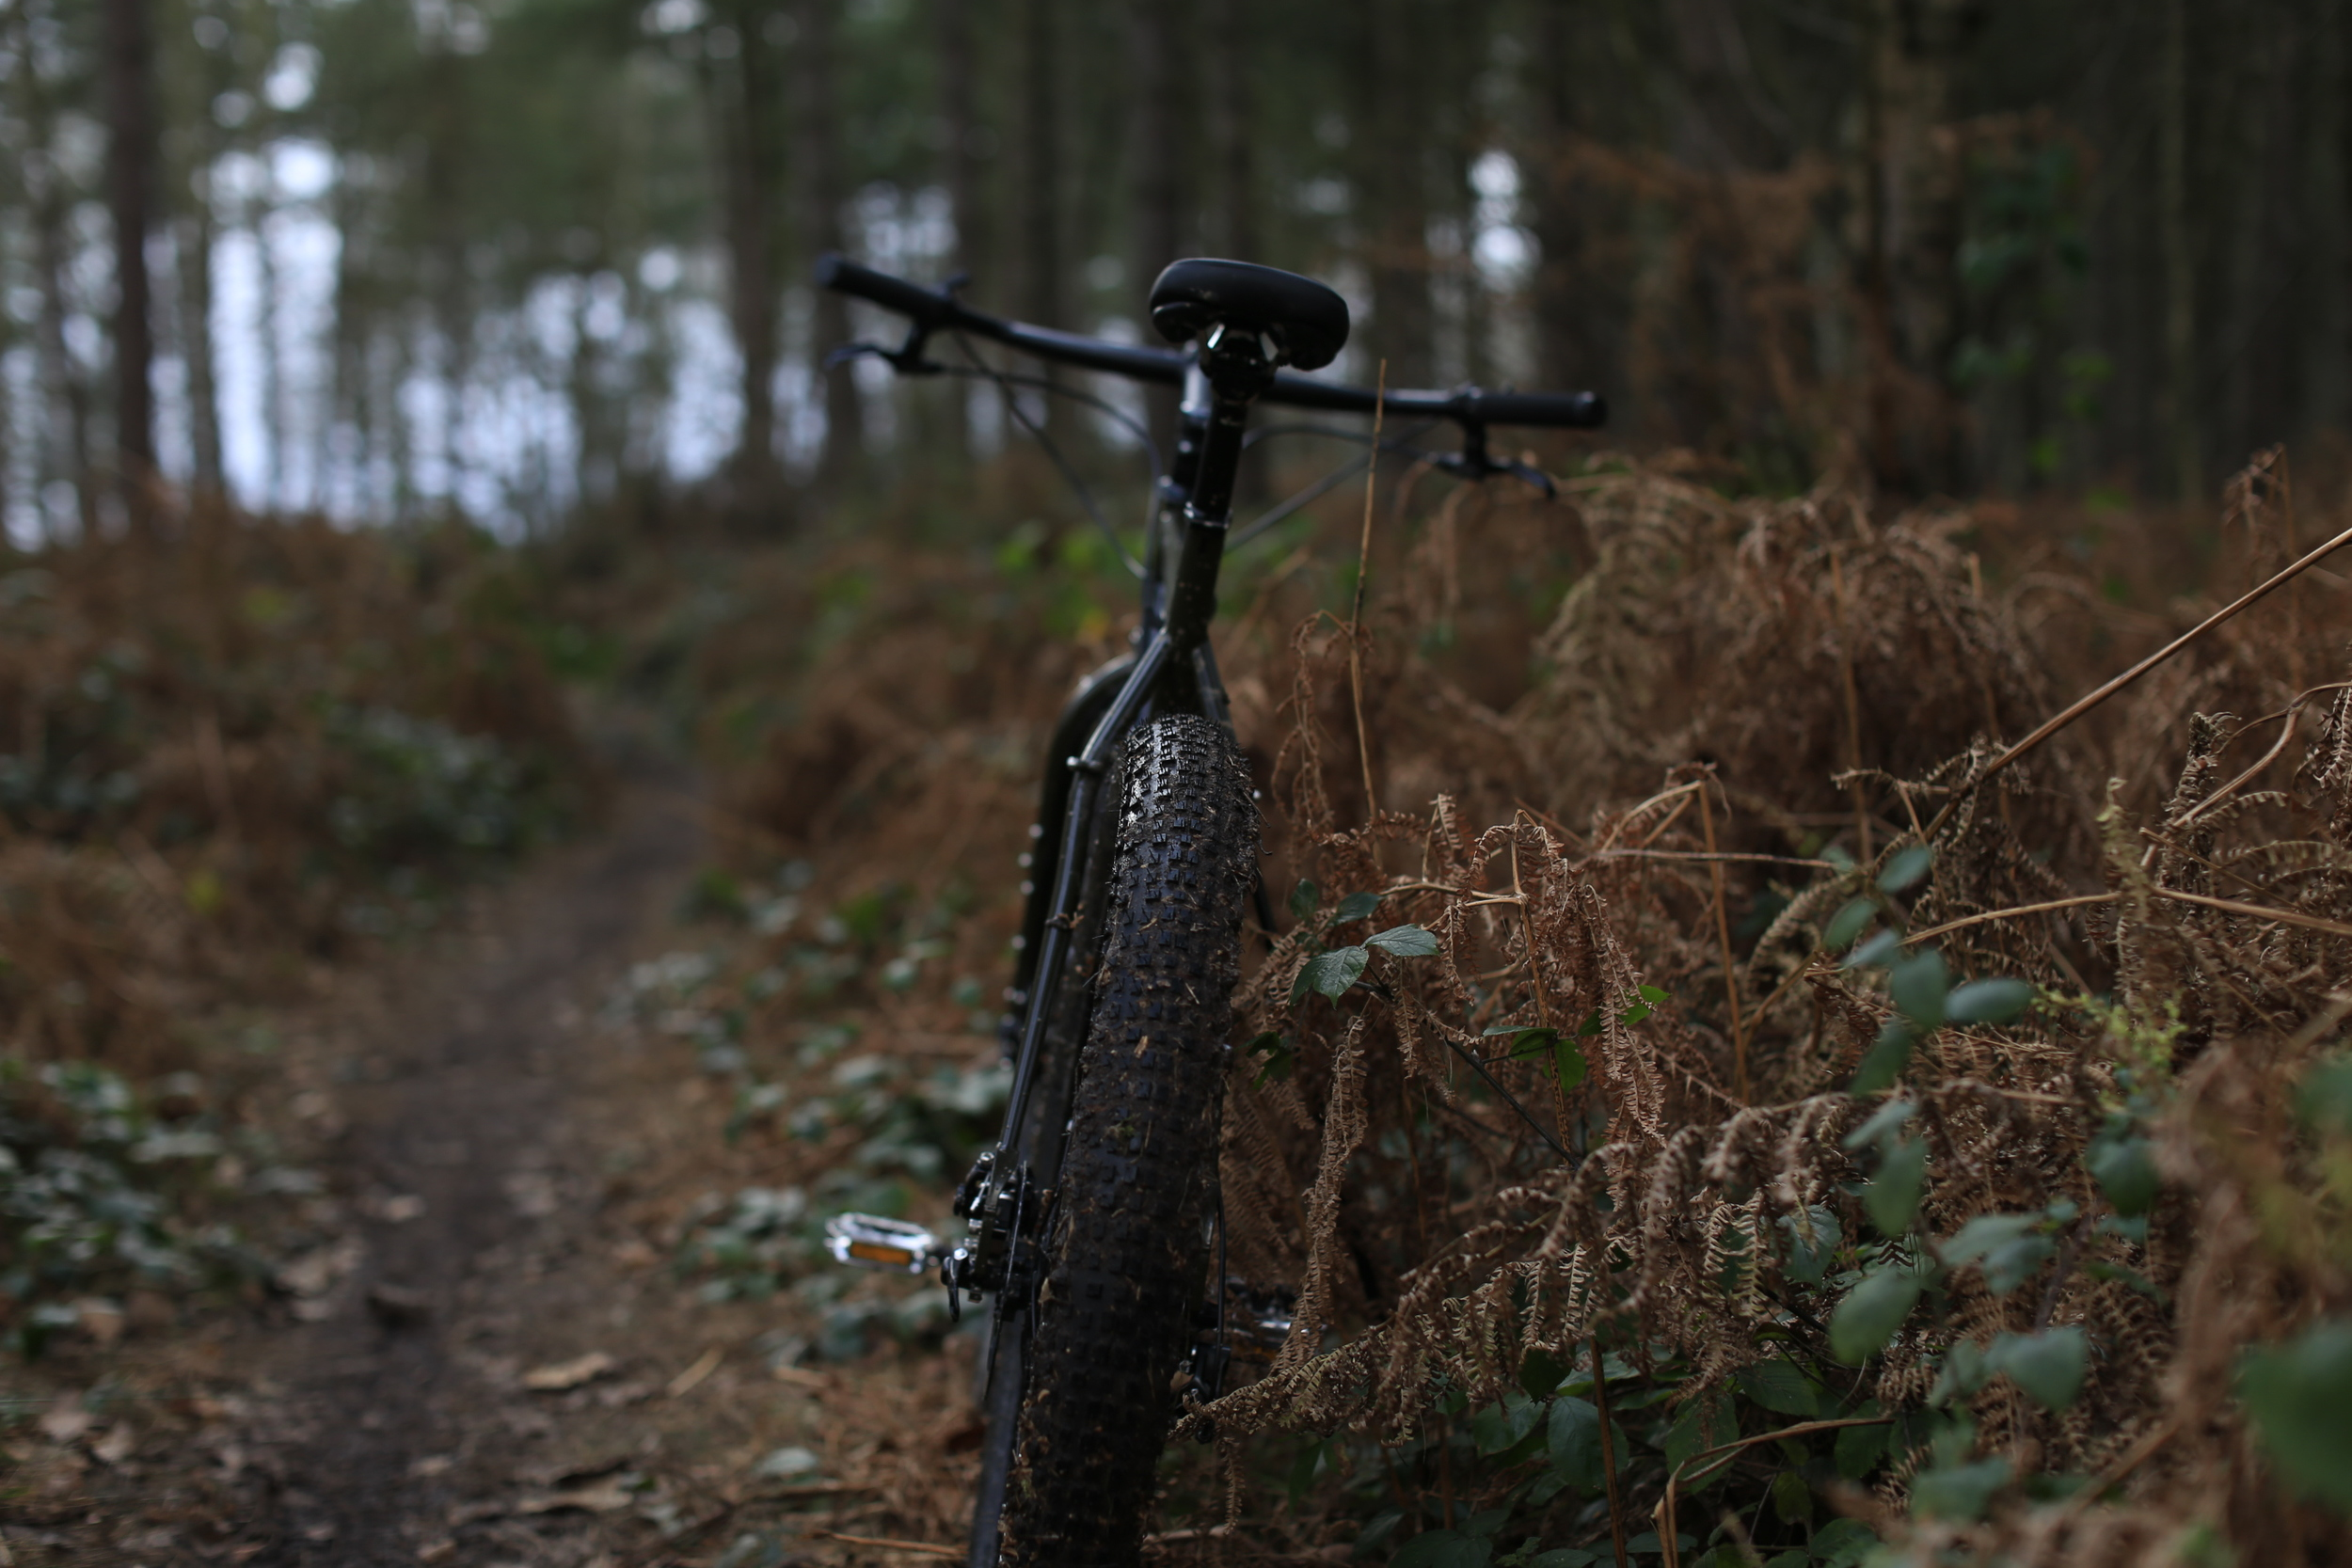 surly, surly ecr, woods, adventure, cycling, bicycle, bikes, mountain bike, cycle gear